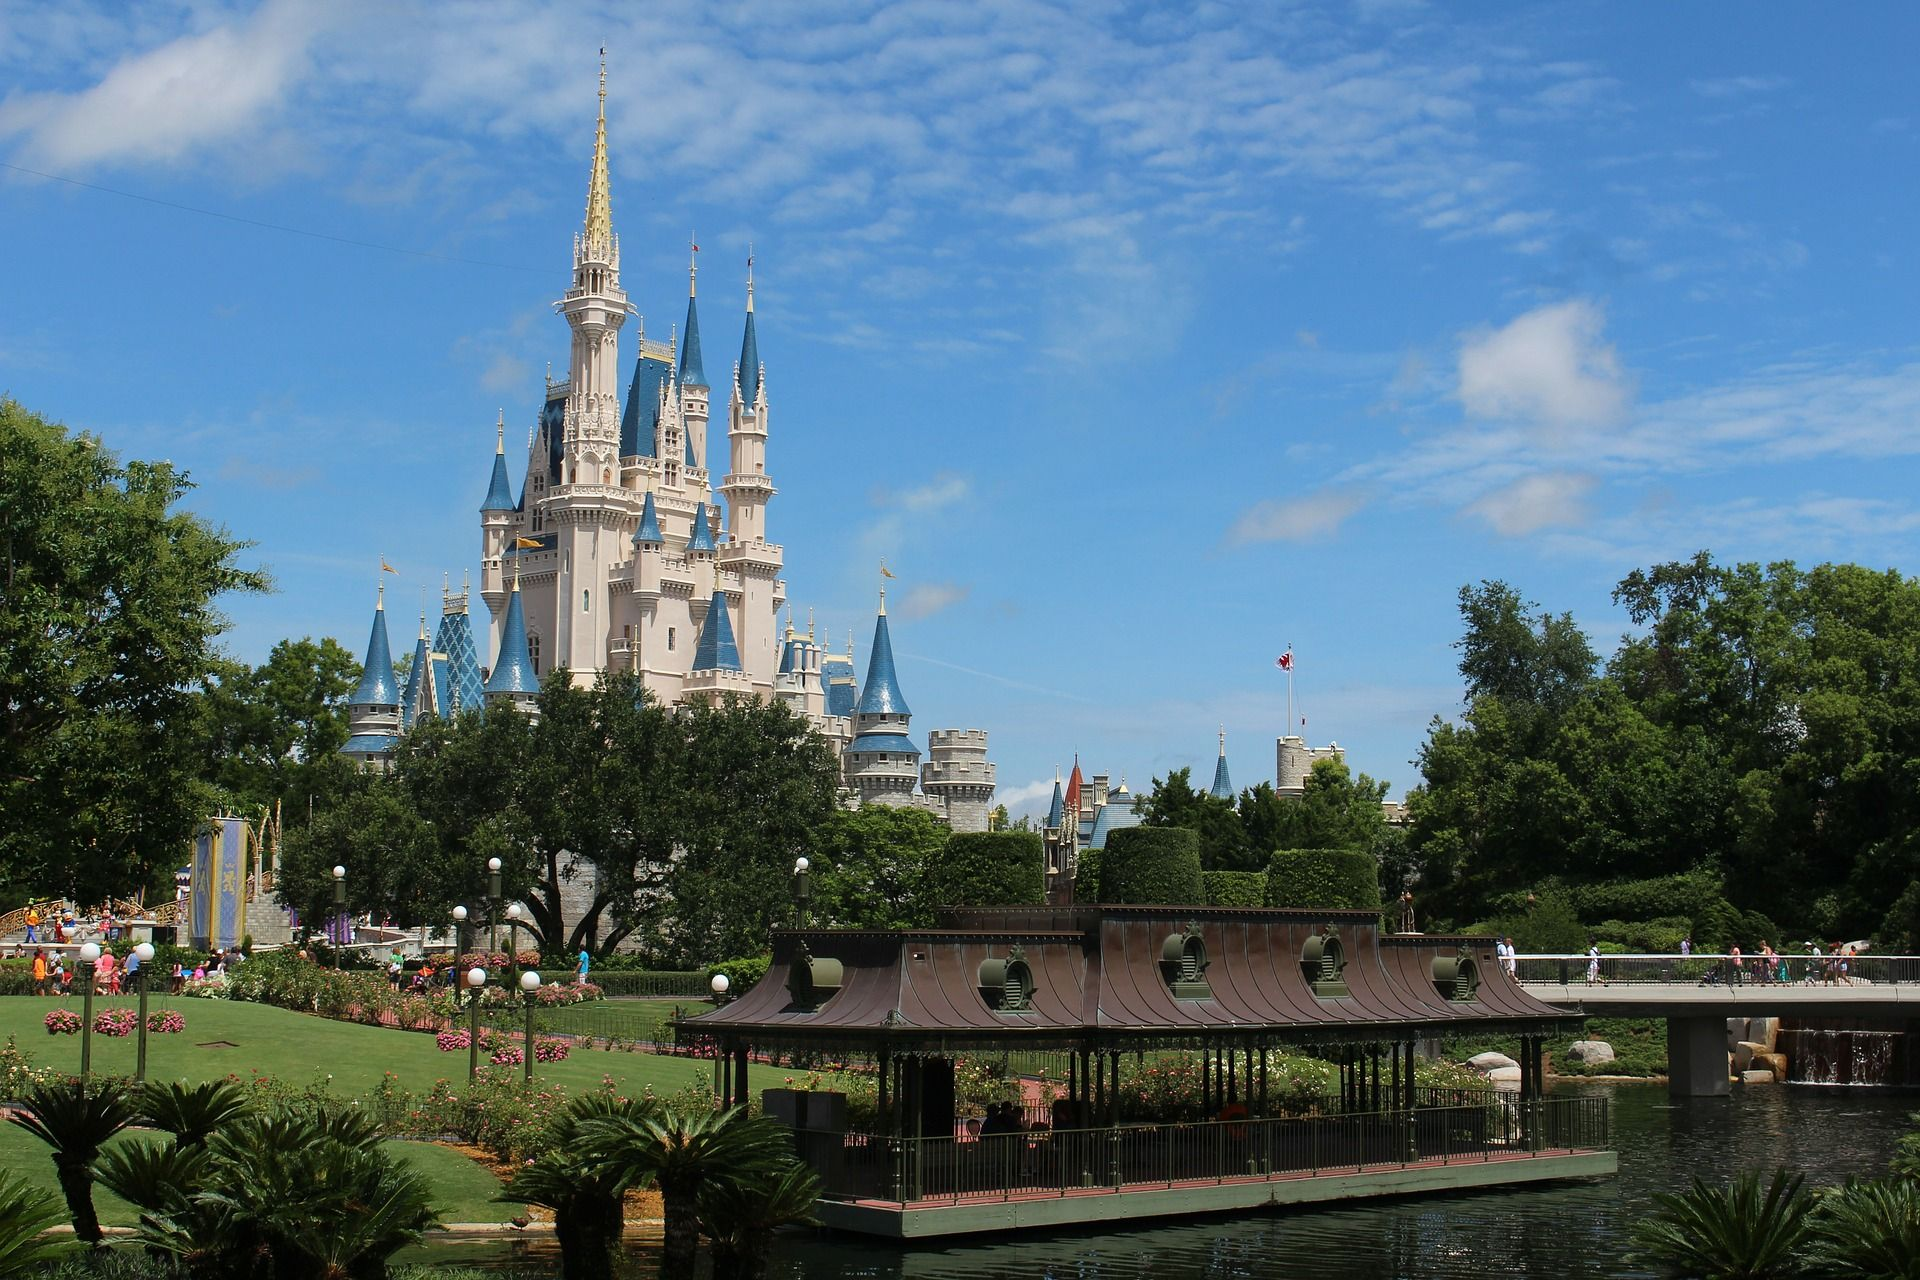 Disney Castle with river view